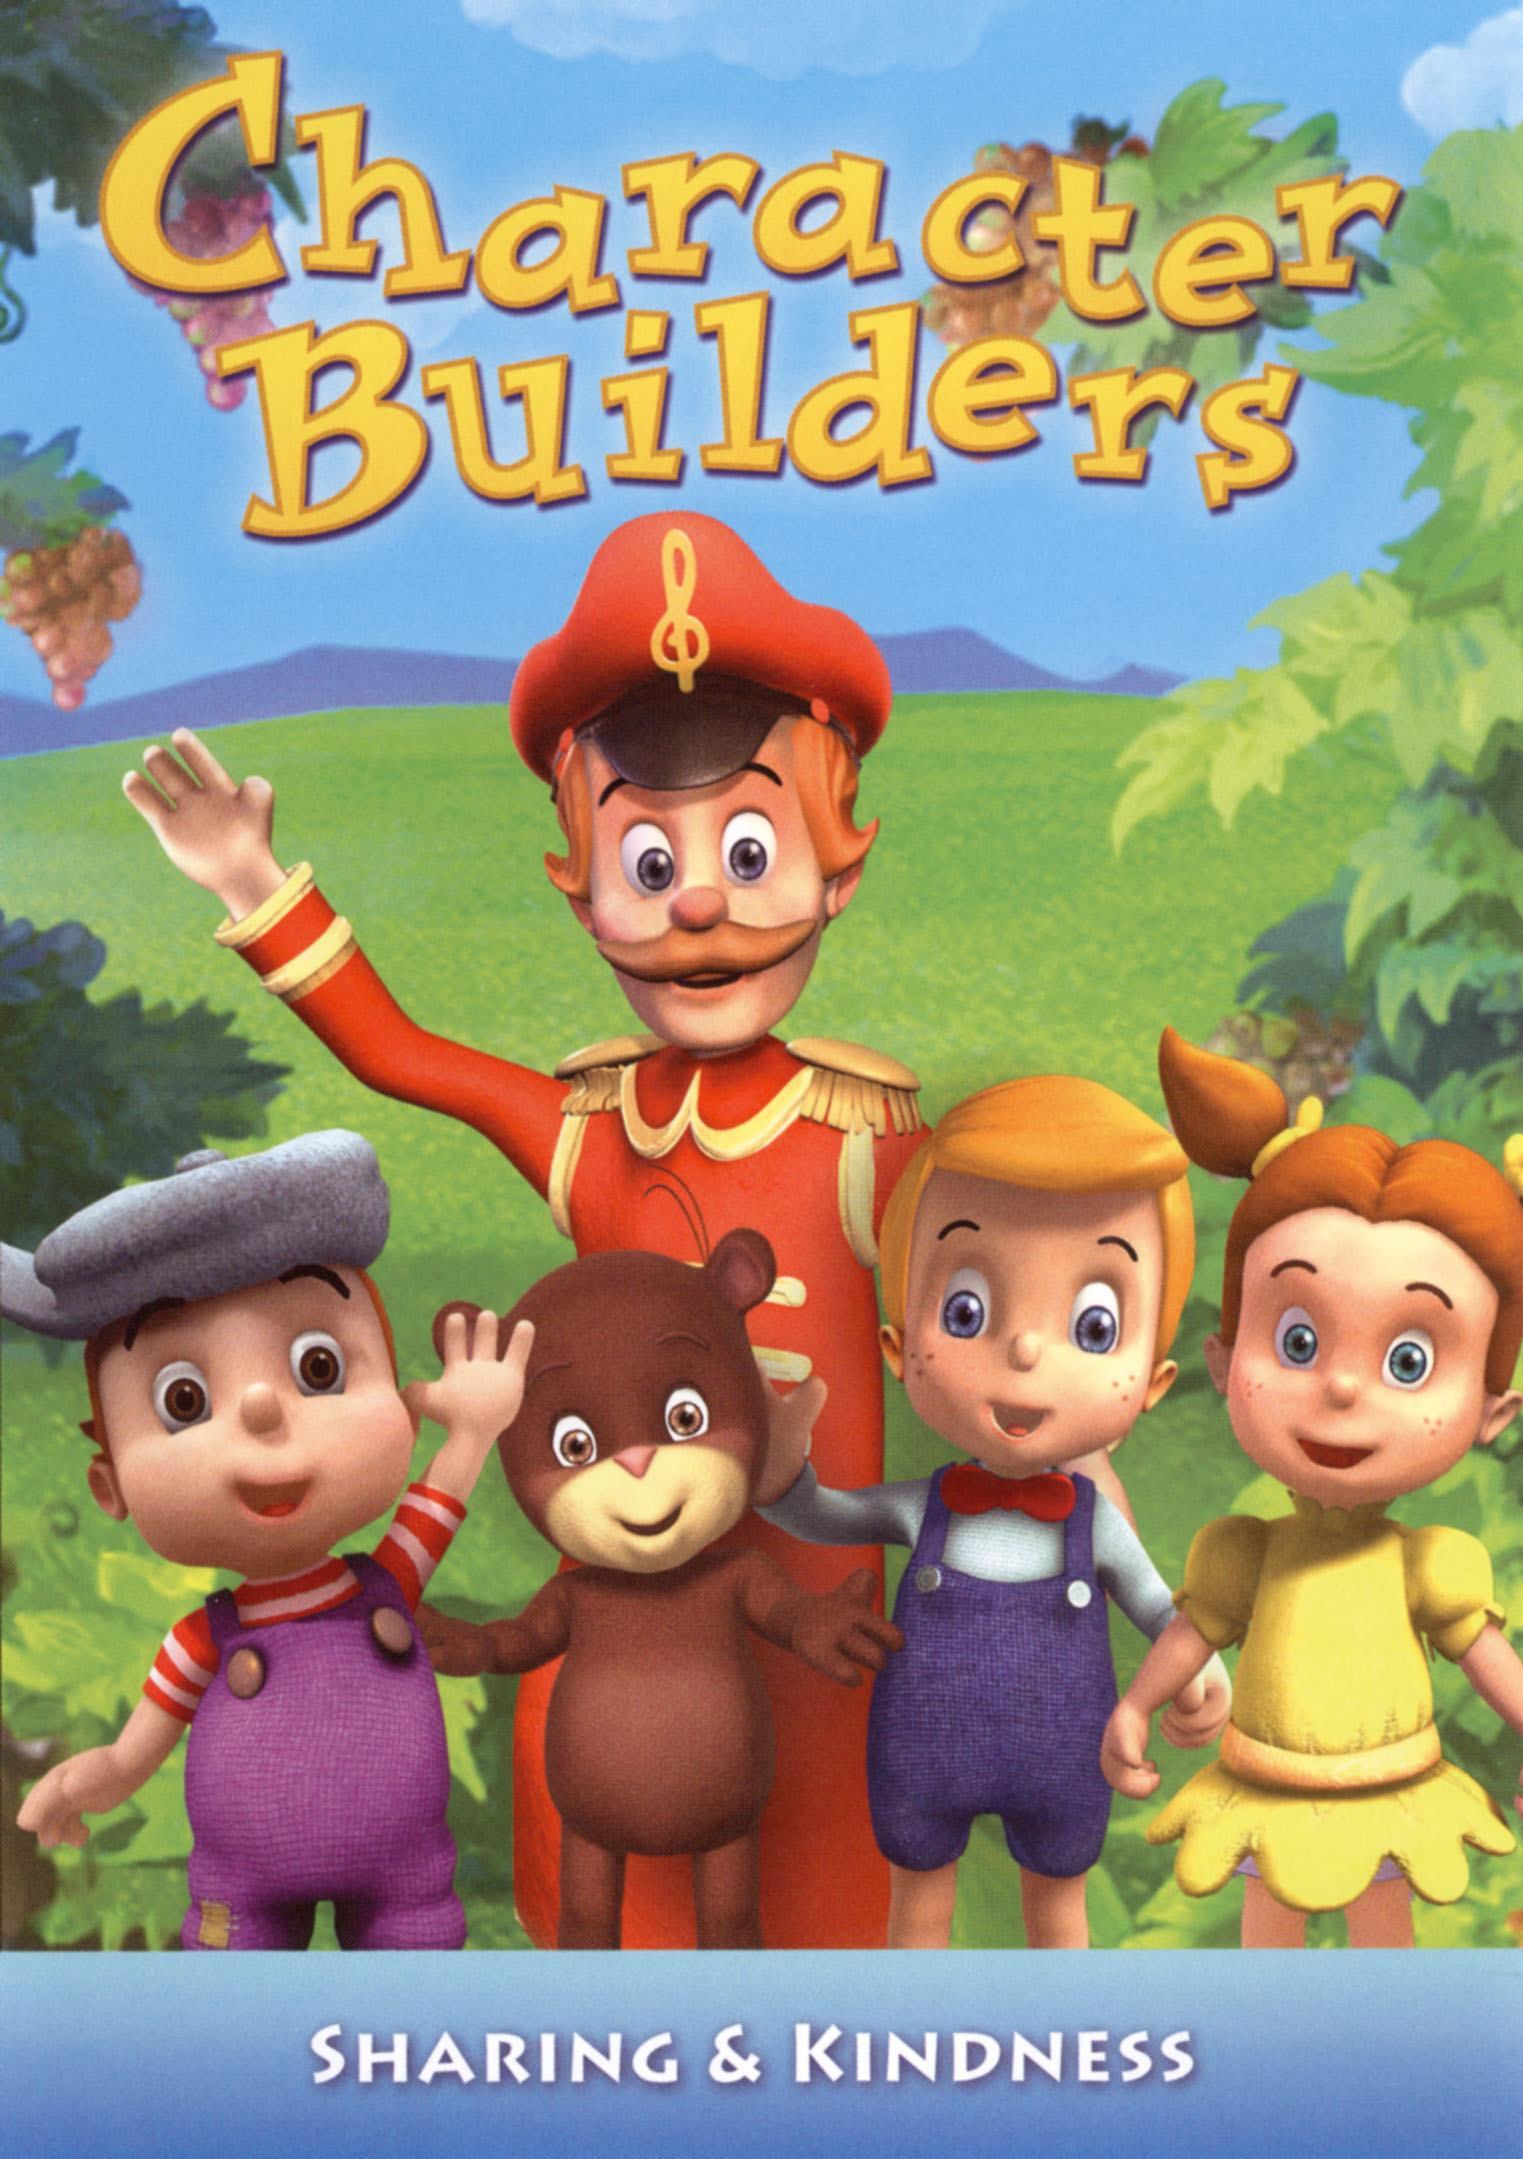 Character Builders: Learn More About Sharing and Kindness